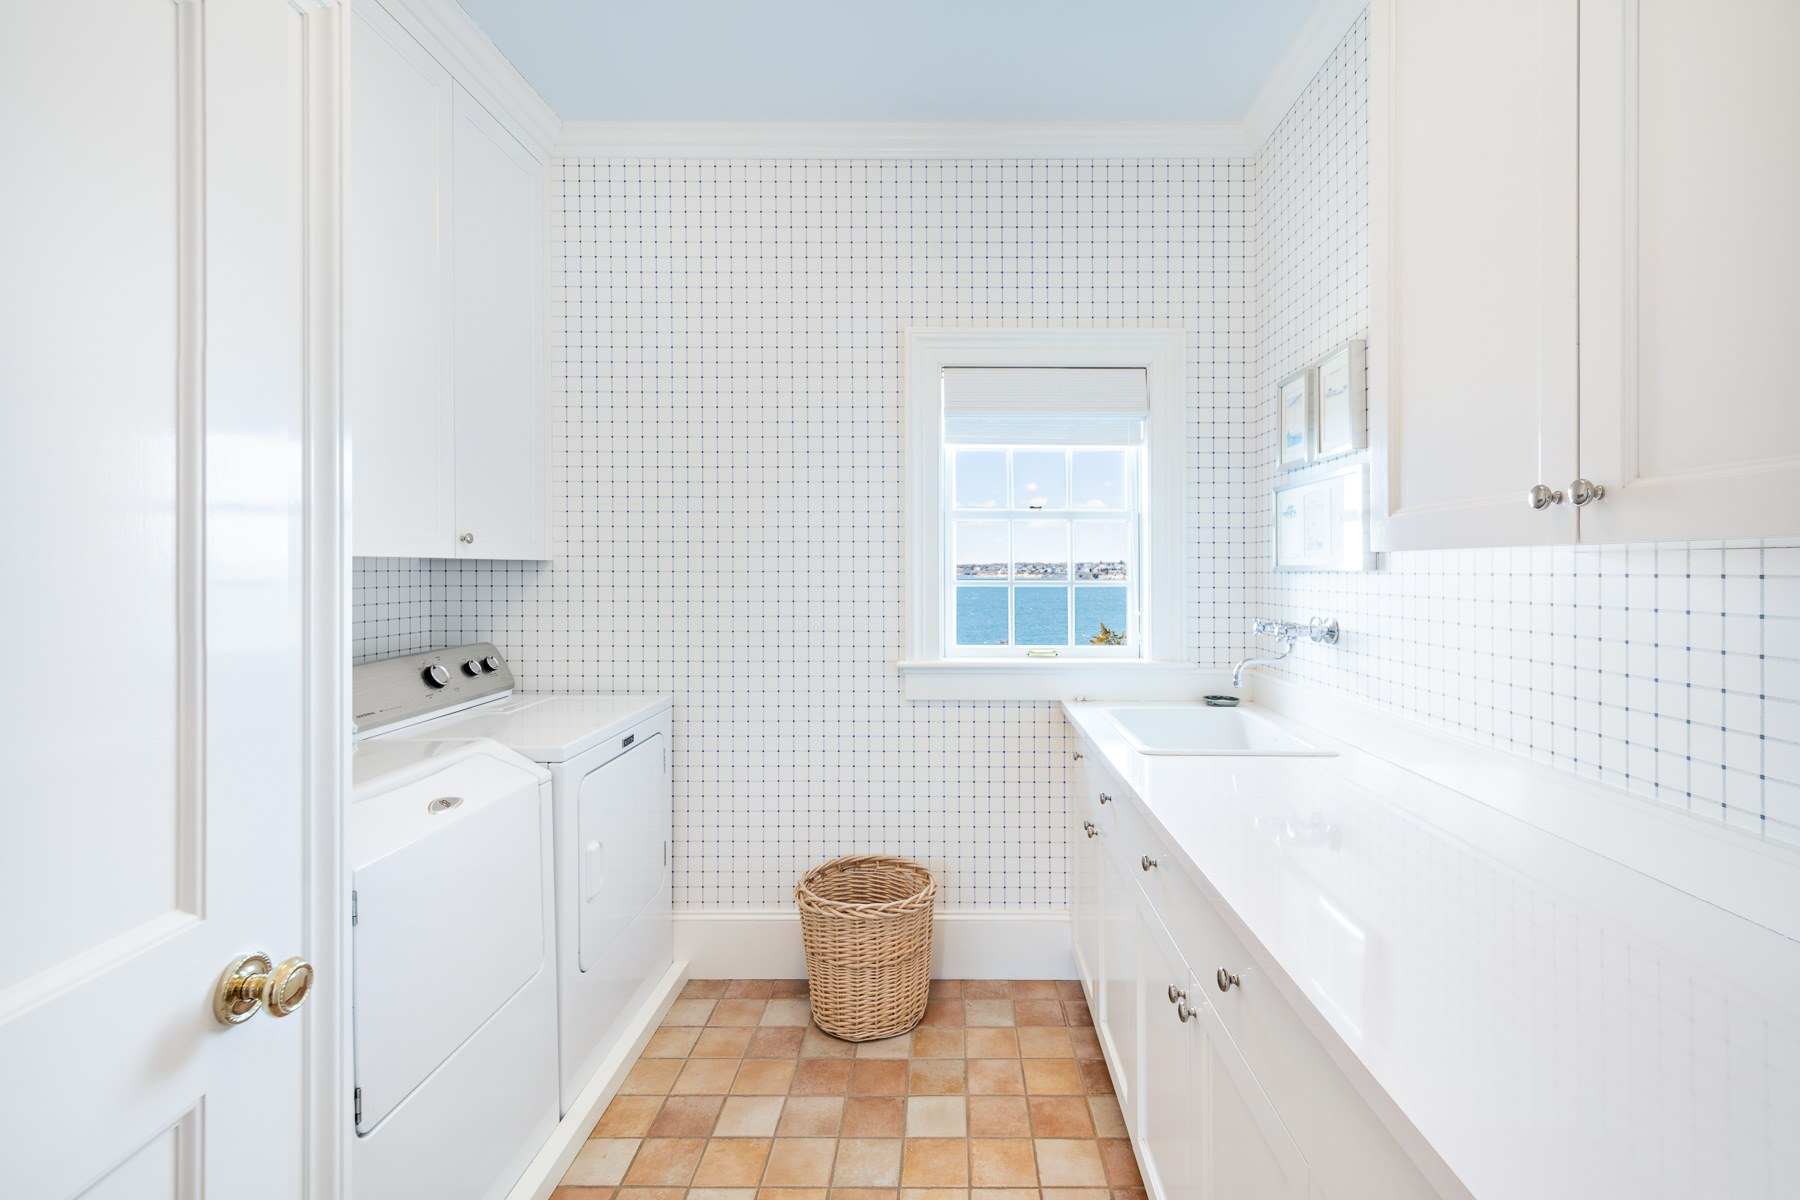 Additional photo for property listing at 260 Beavertail Road, Jamestown, RI 260 Beavertail Road Jamestown, Rhode Island 02835 United States